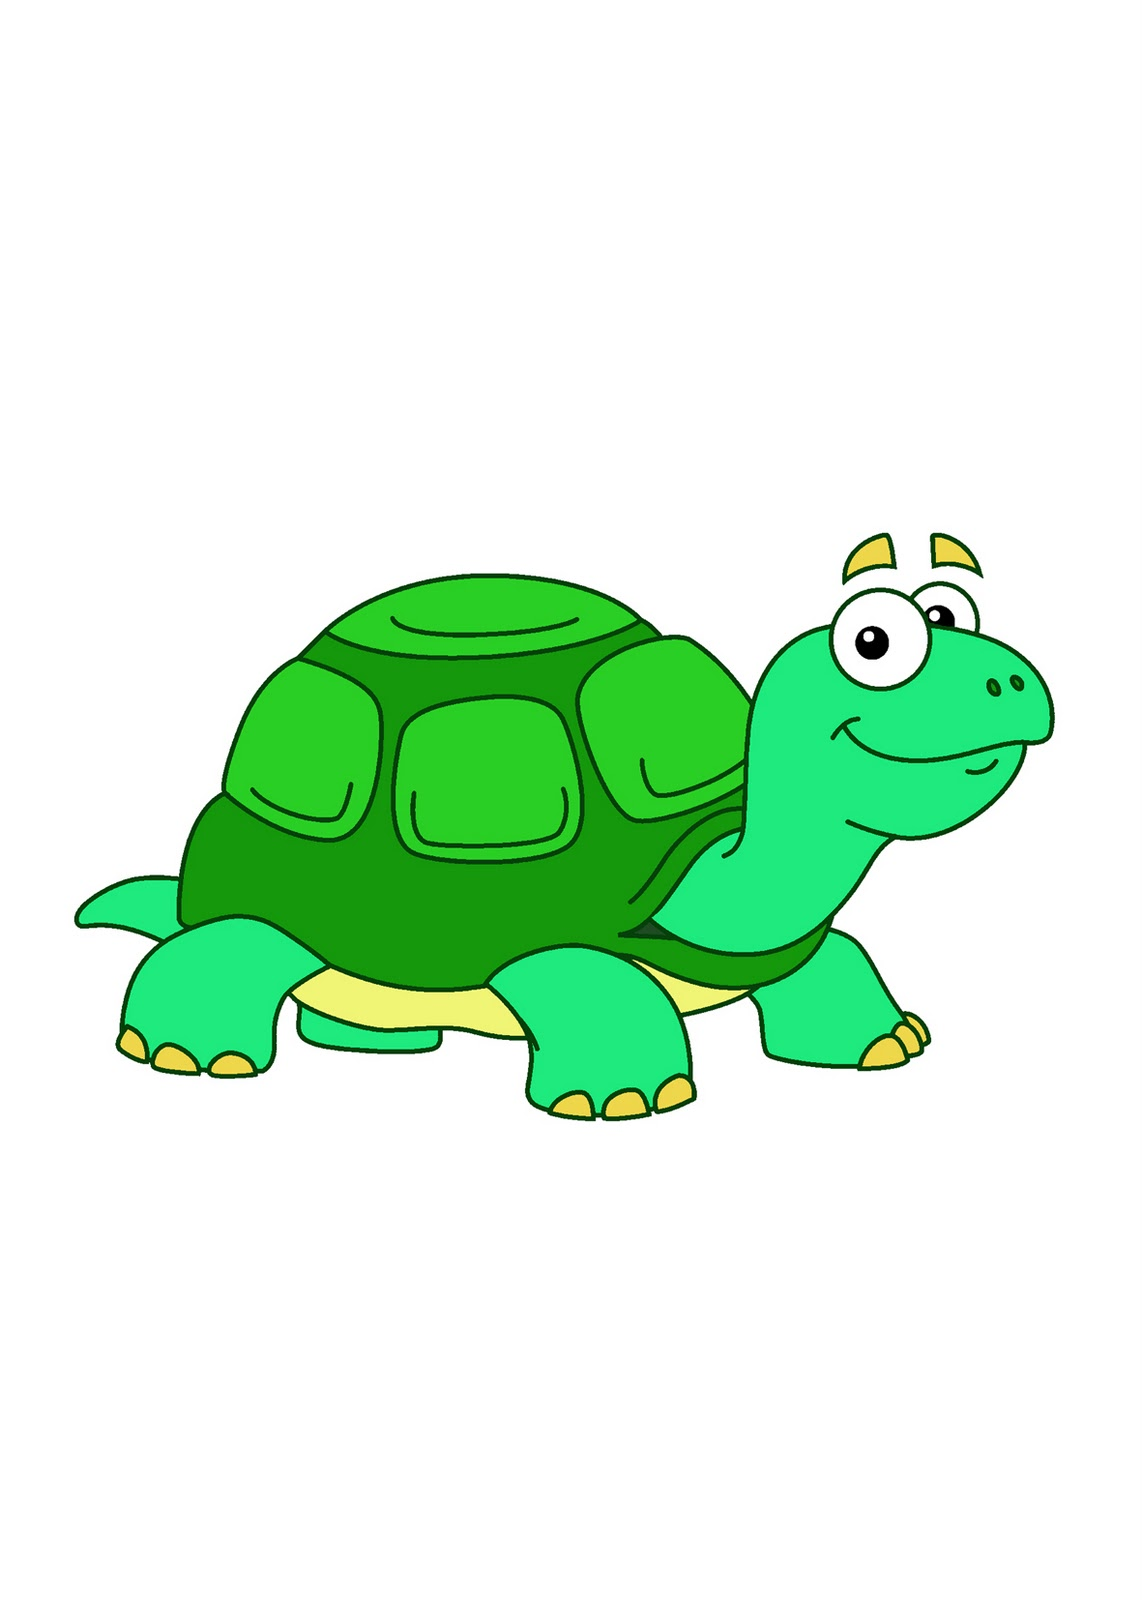 Animated Turtle PC Android iPhone and iPad Wallpapers and Pictures 1142x1600